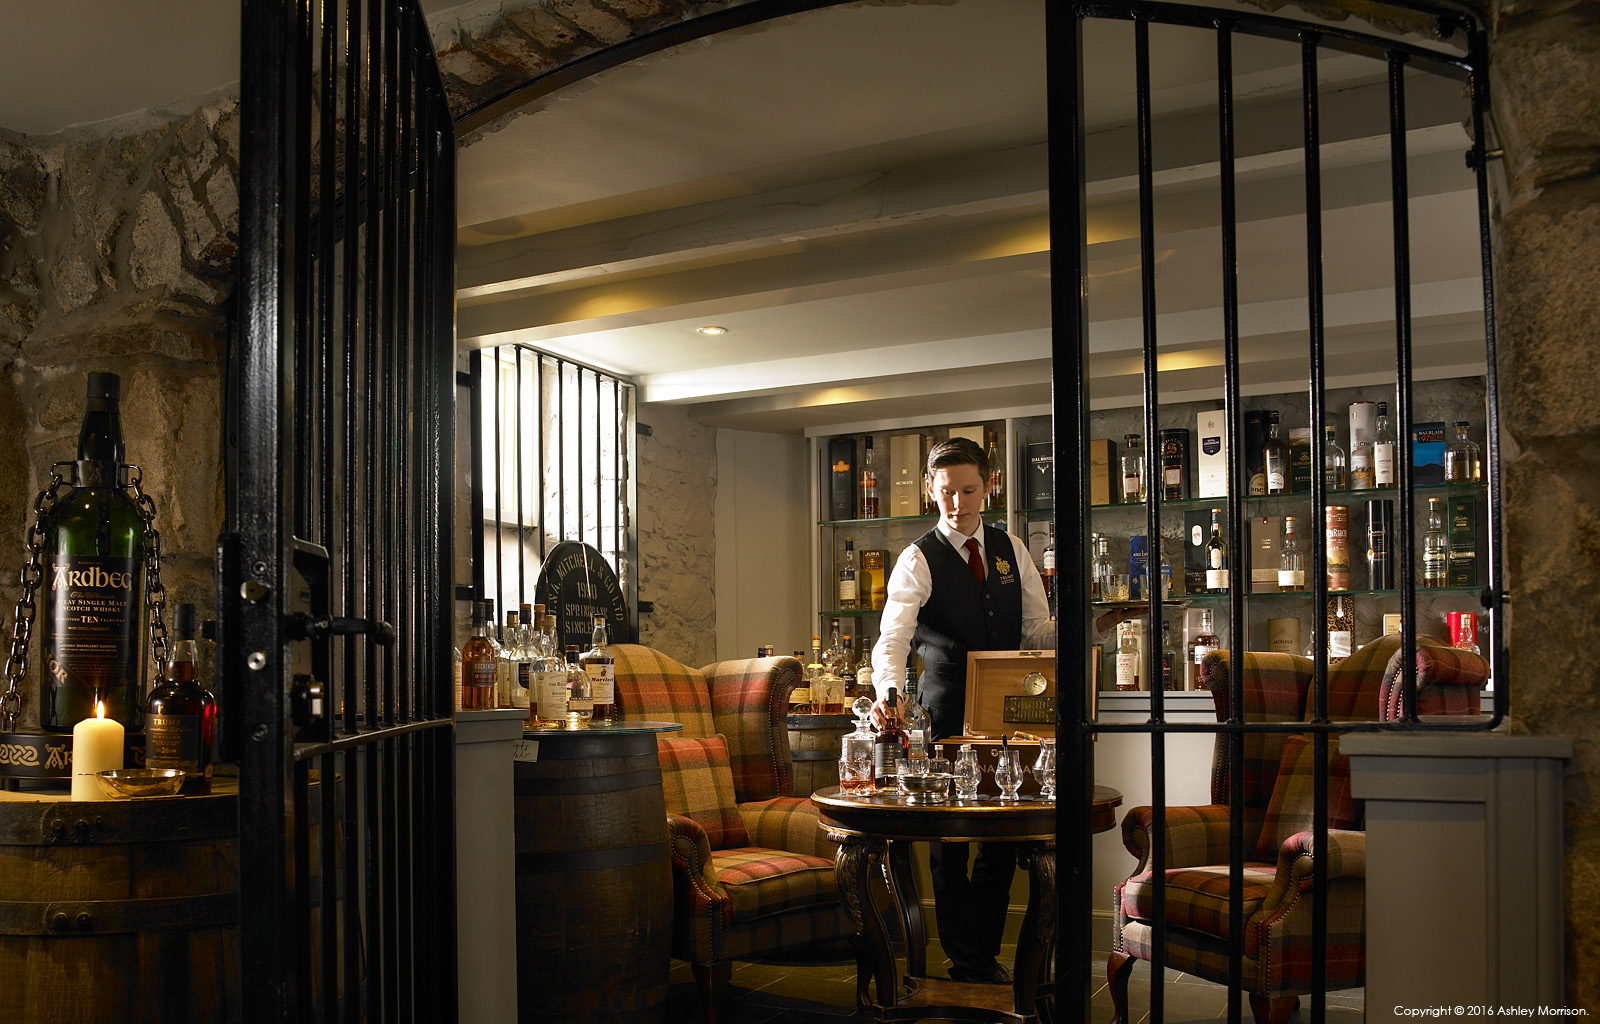 Whisky tastings room in the basement at the Trump International Golf Hotel near Aberdeen in Scotland.